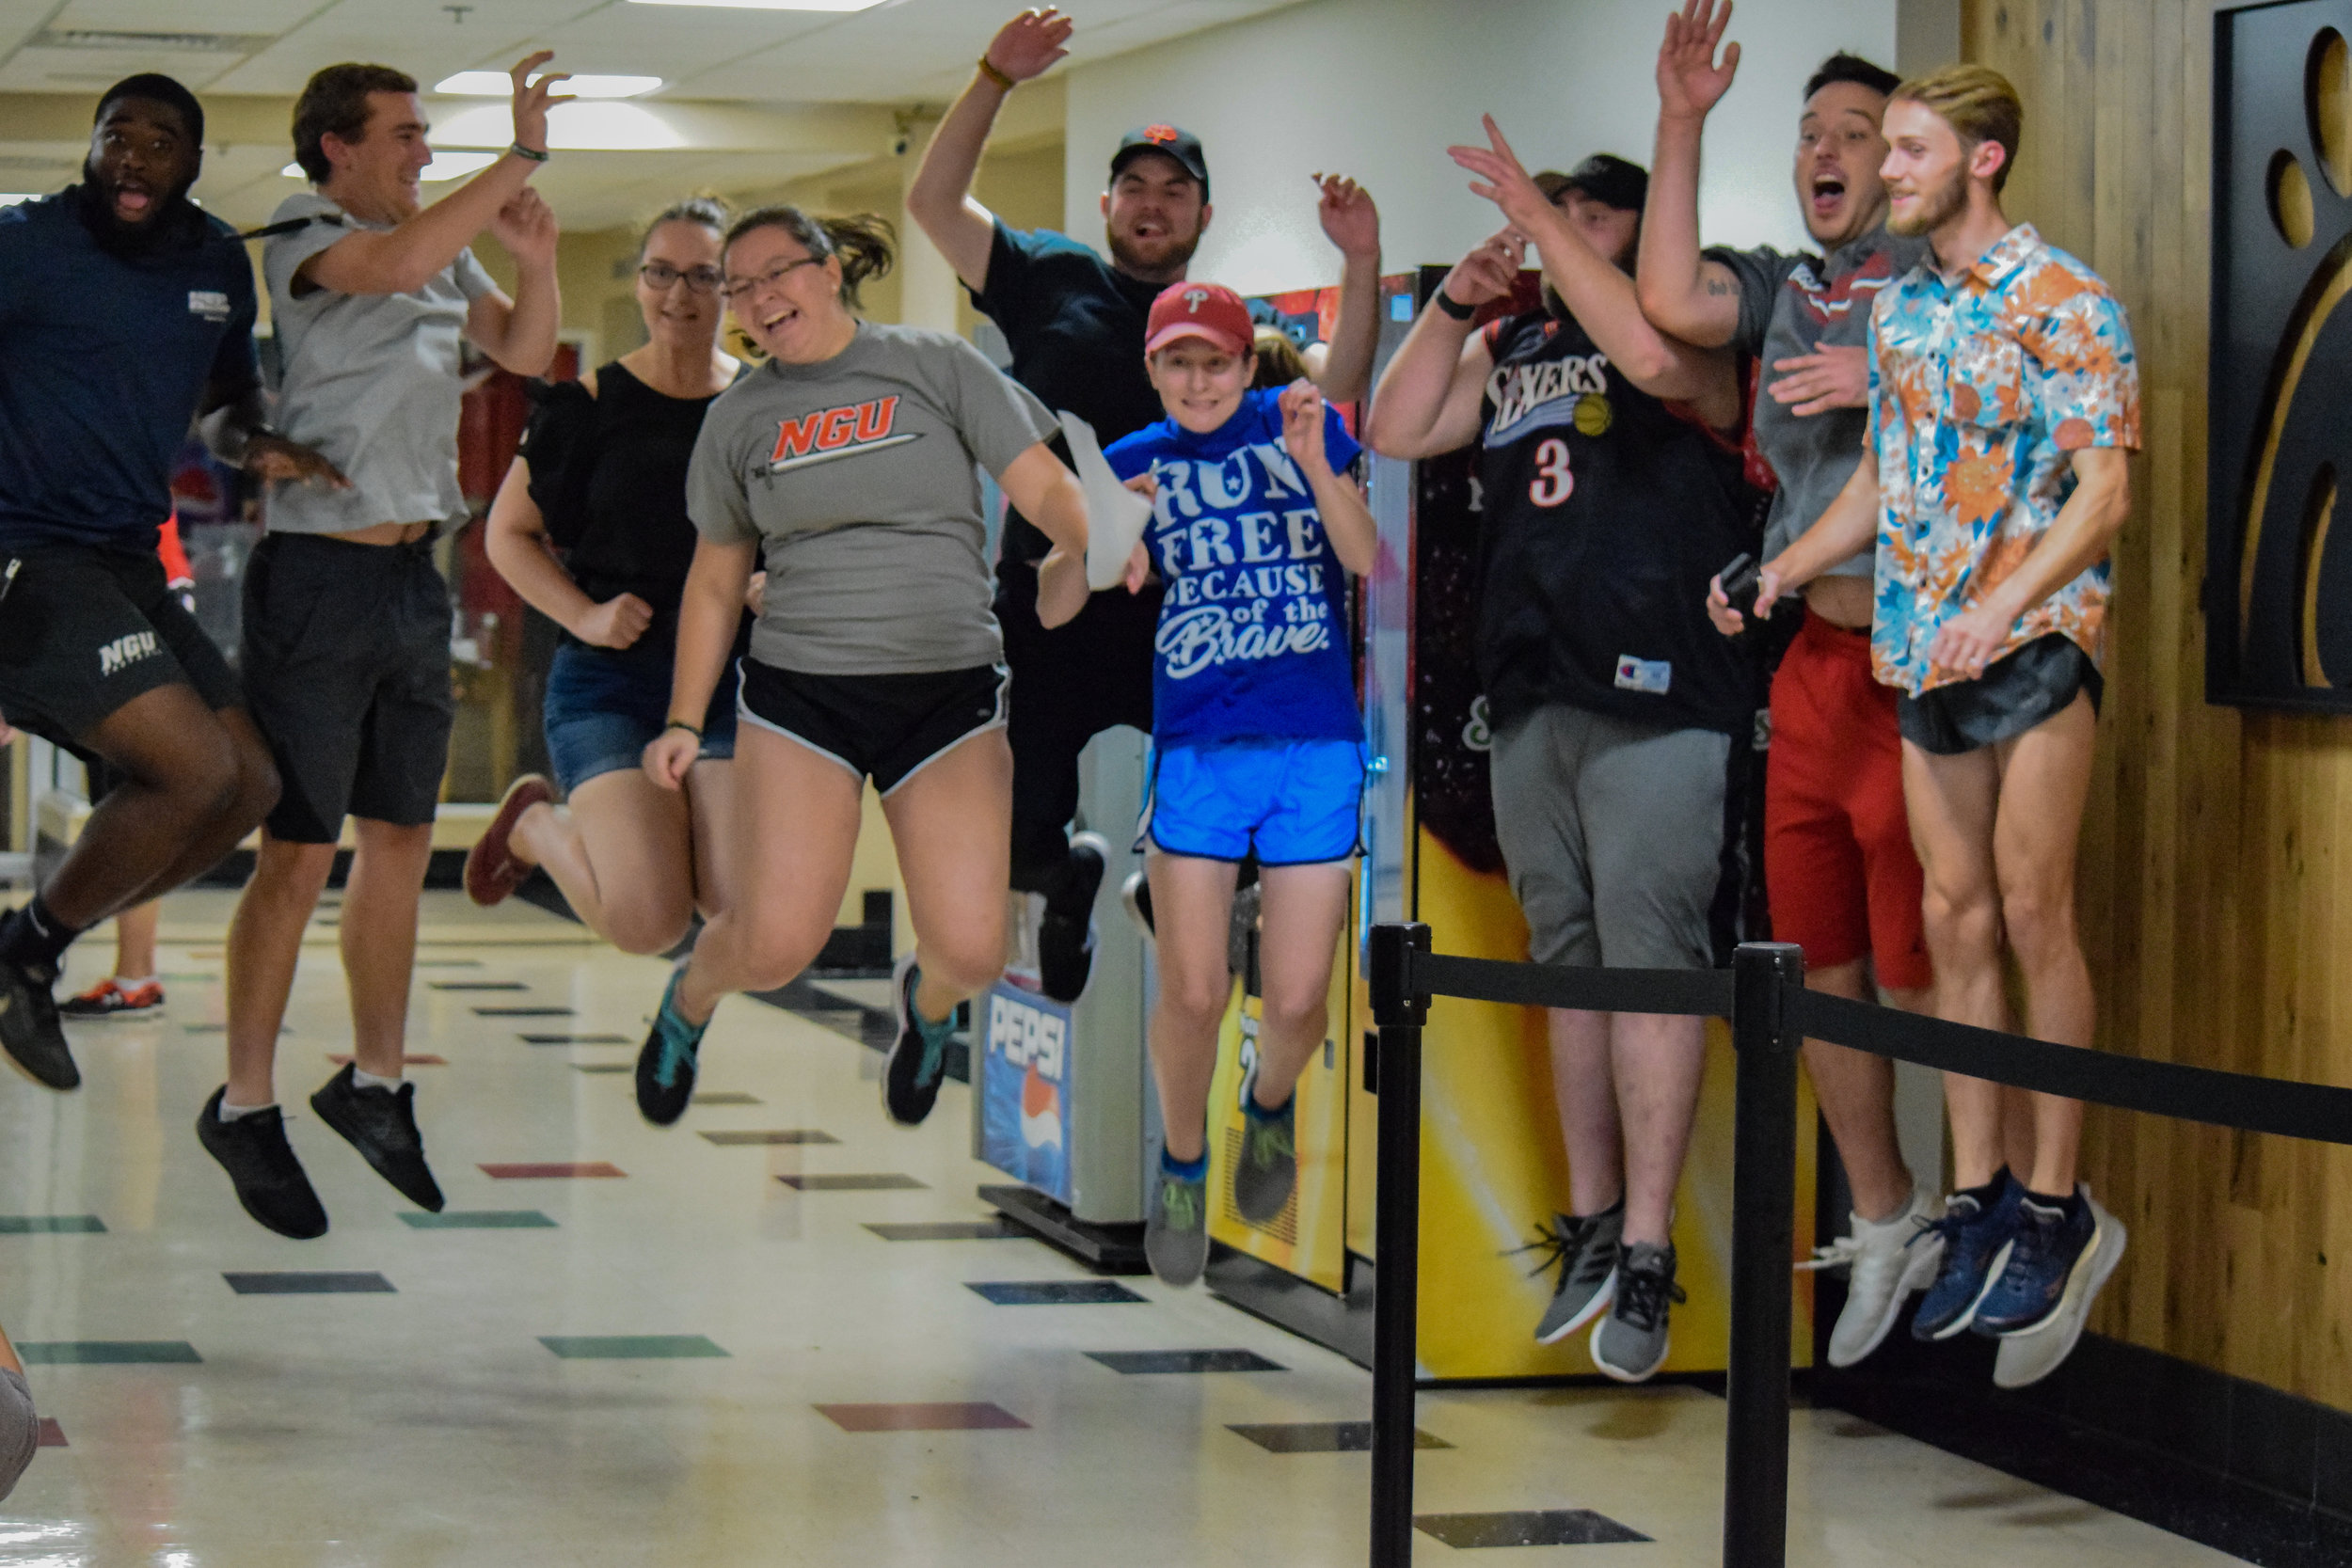 The criminal justice club jumps for joy as they get ready to set off on the race.